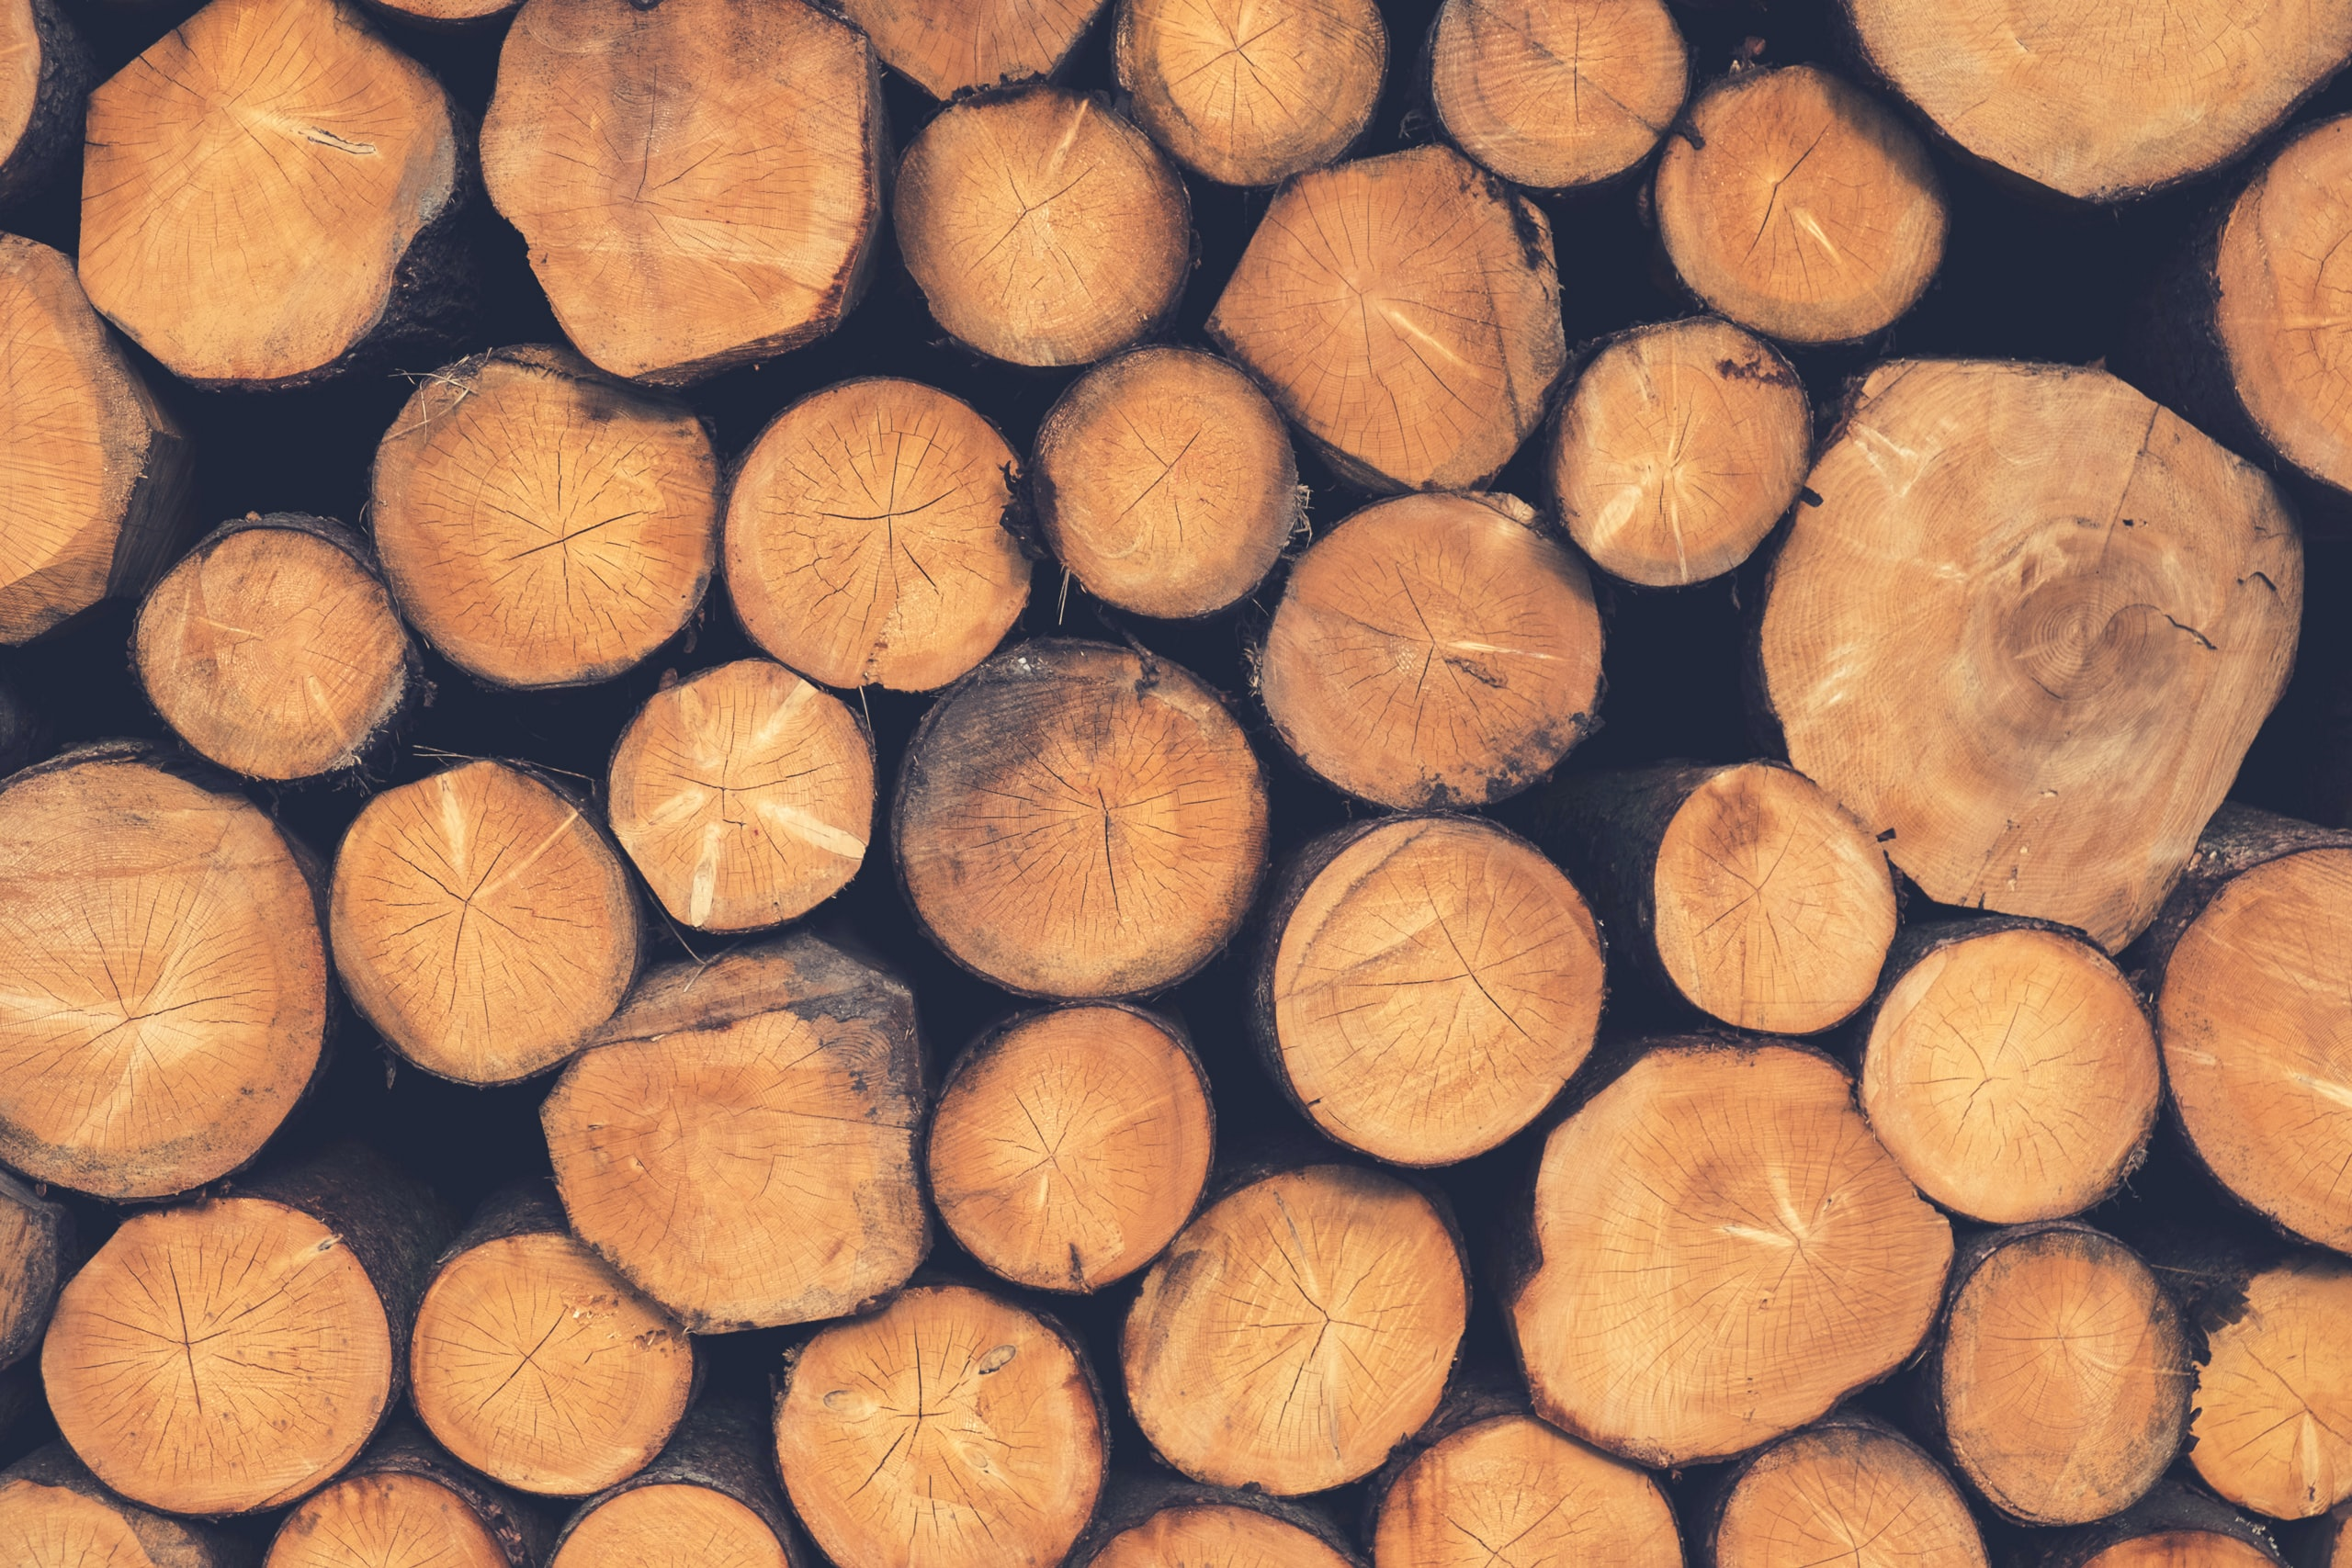 A stack of sawn logs in various sizes